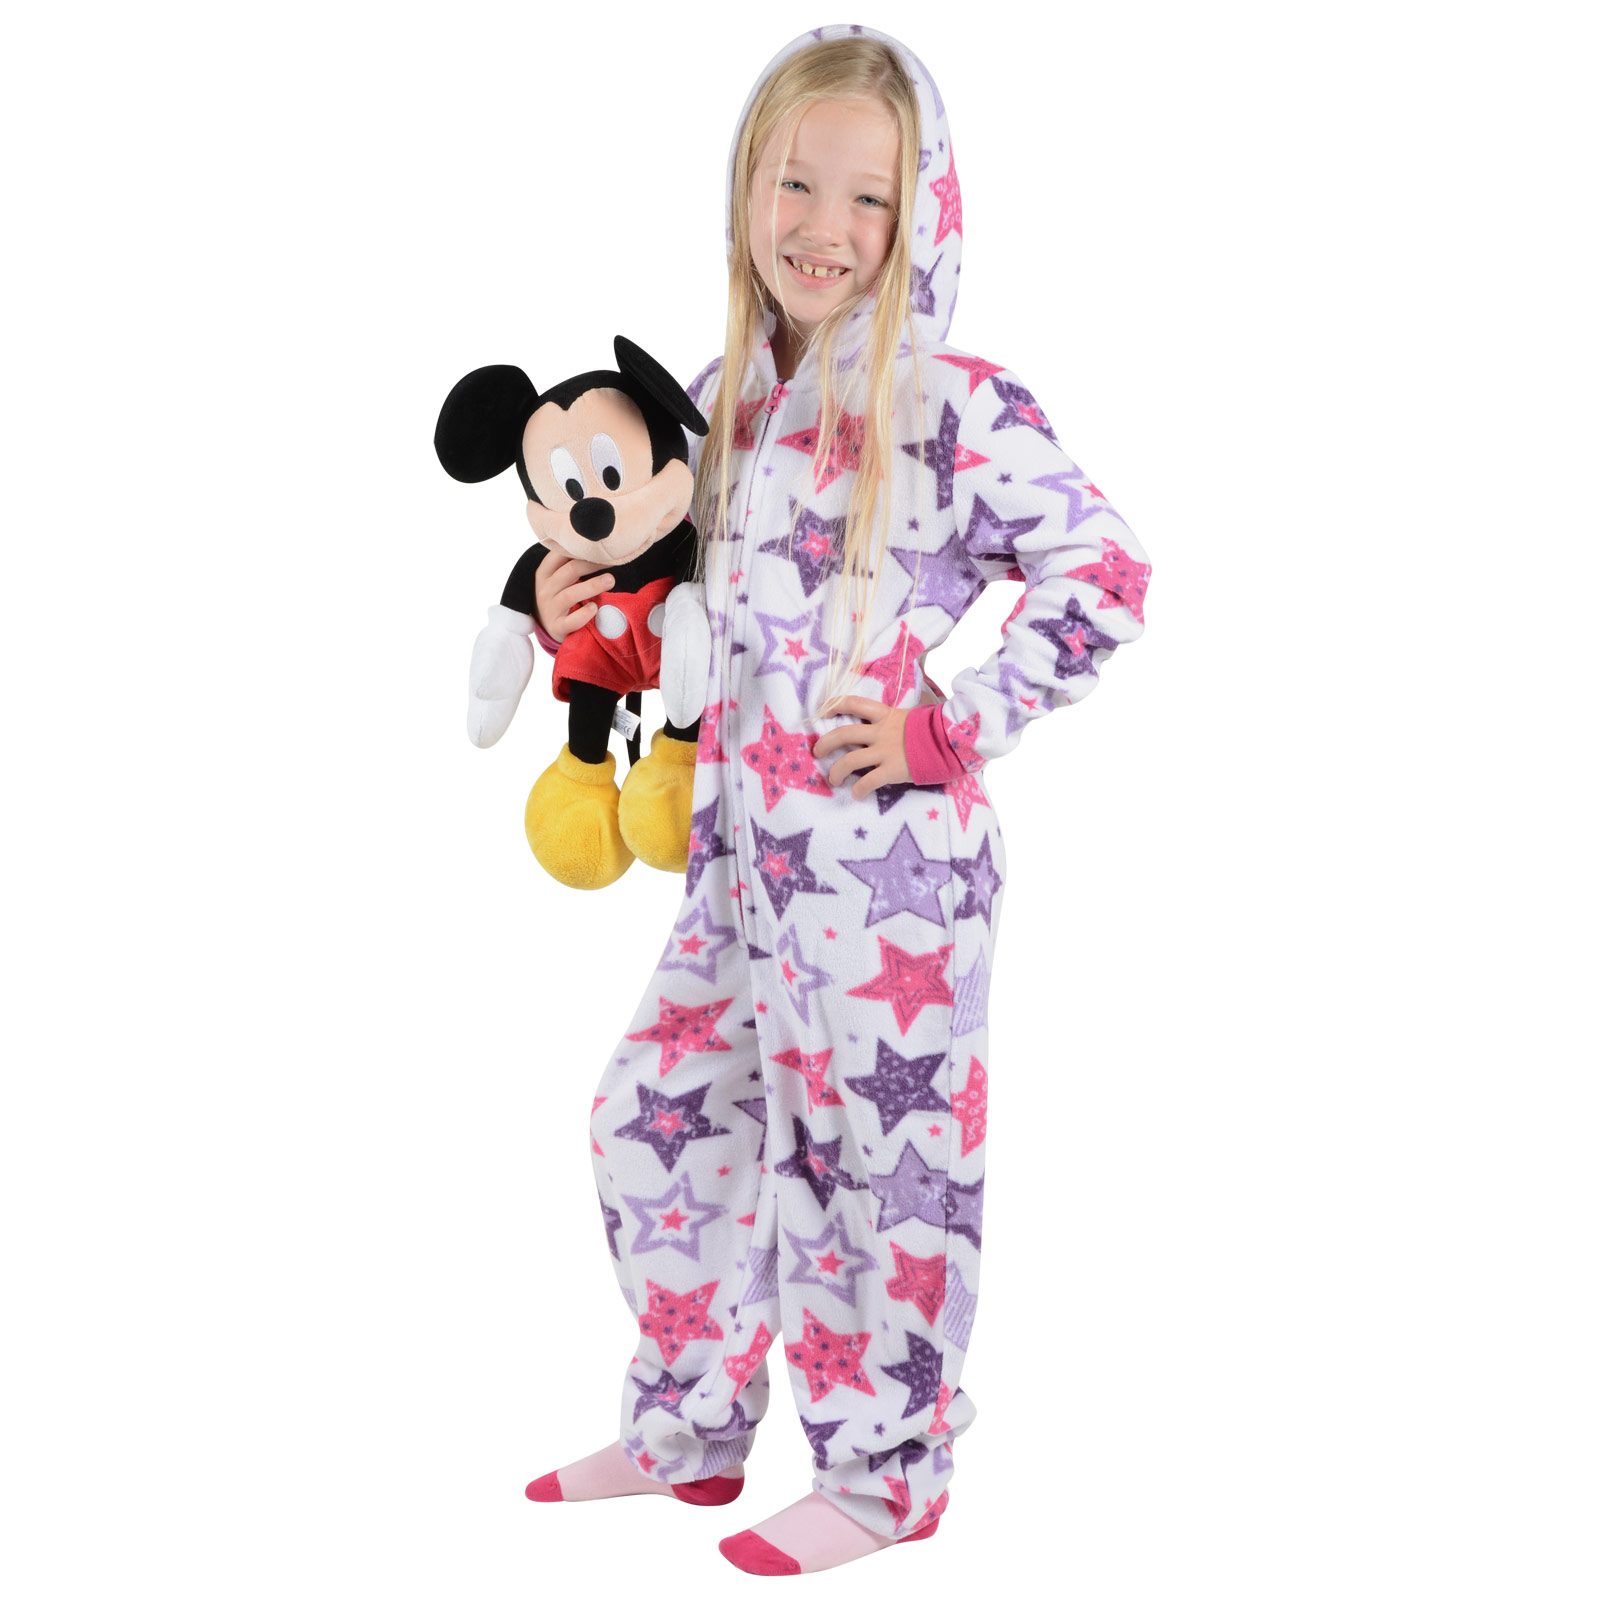 Discover great deals on Holiday Girls' Pajamas, Striped Girls' Pajamas, and Polka Dotted Girls' Pajamas at Macys Macy's Presents: The Edit - A curated mix of fashion and inspiration Check It Out Free Shipping with $49 purchase + Free Store Pickup.